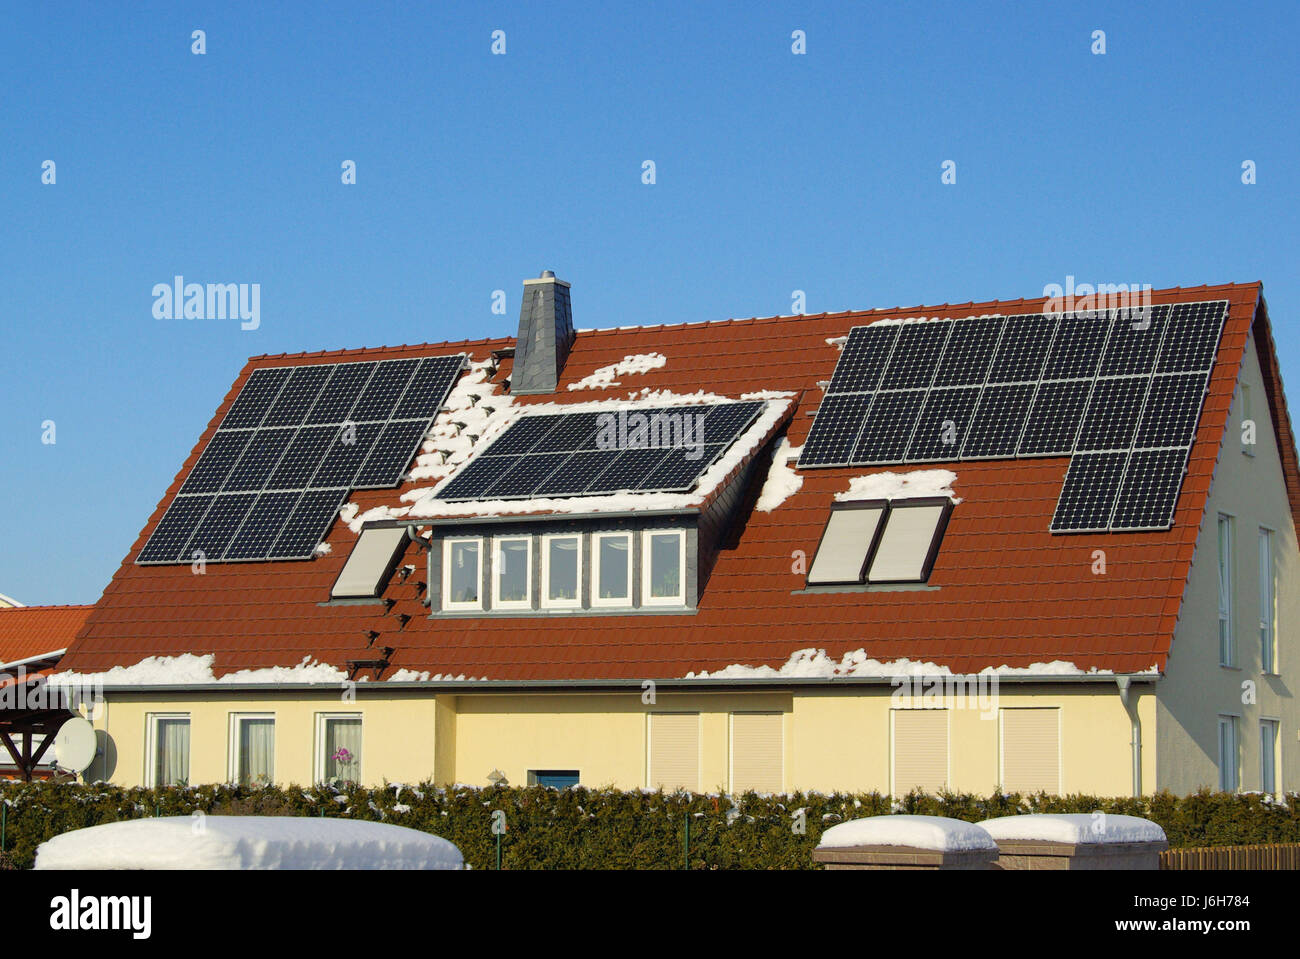 House building cell solar solar cell rooftop house building winter modern